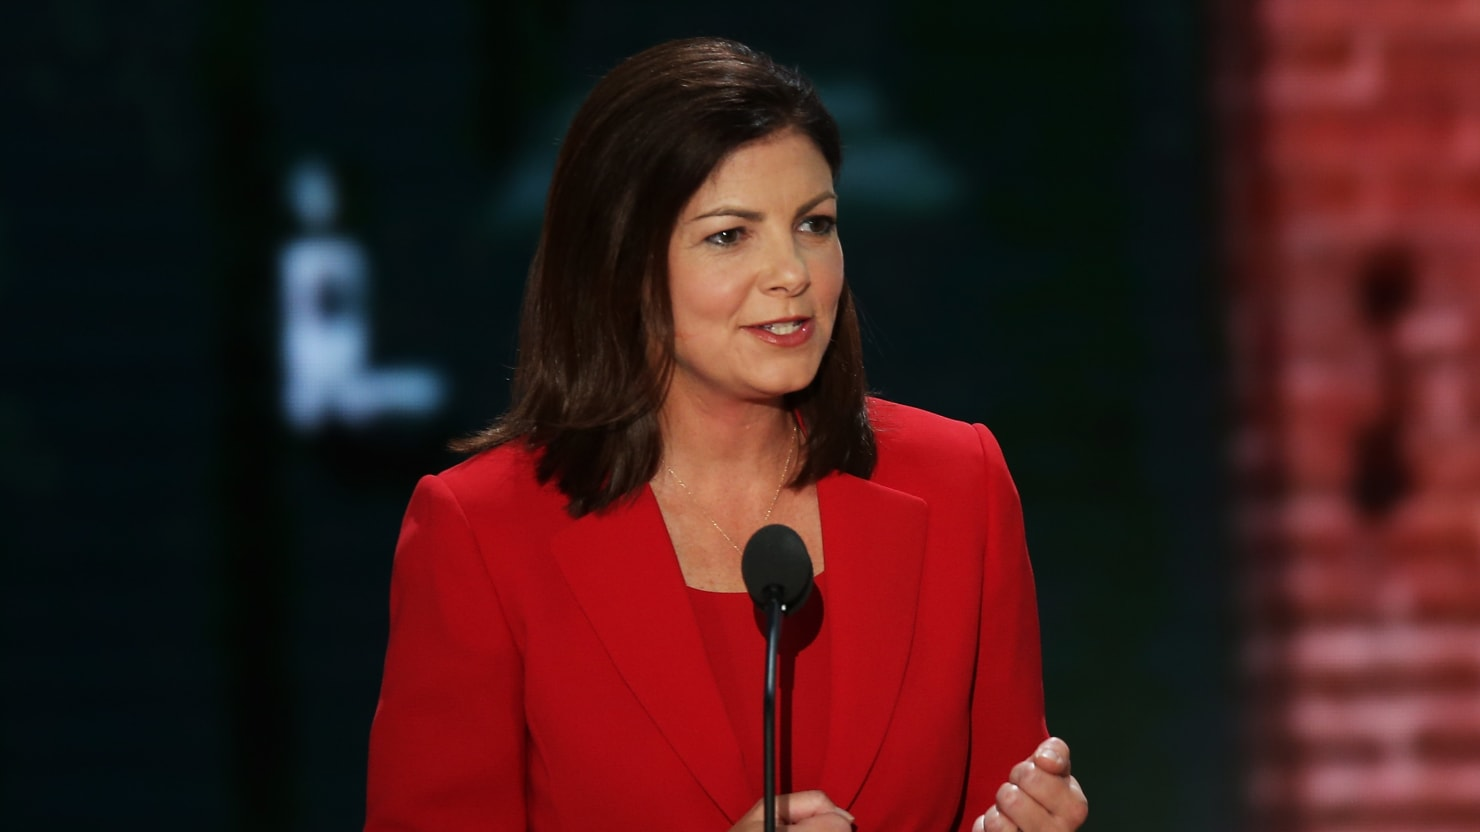 Marco Rubio and Kelly Ayotte Agree With Bobby Jindal... Anyone Else?